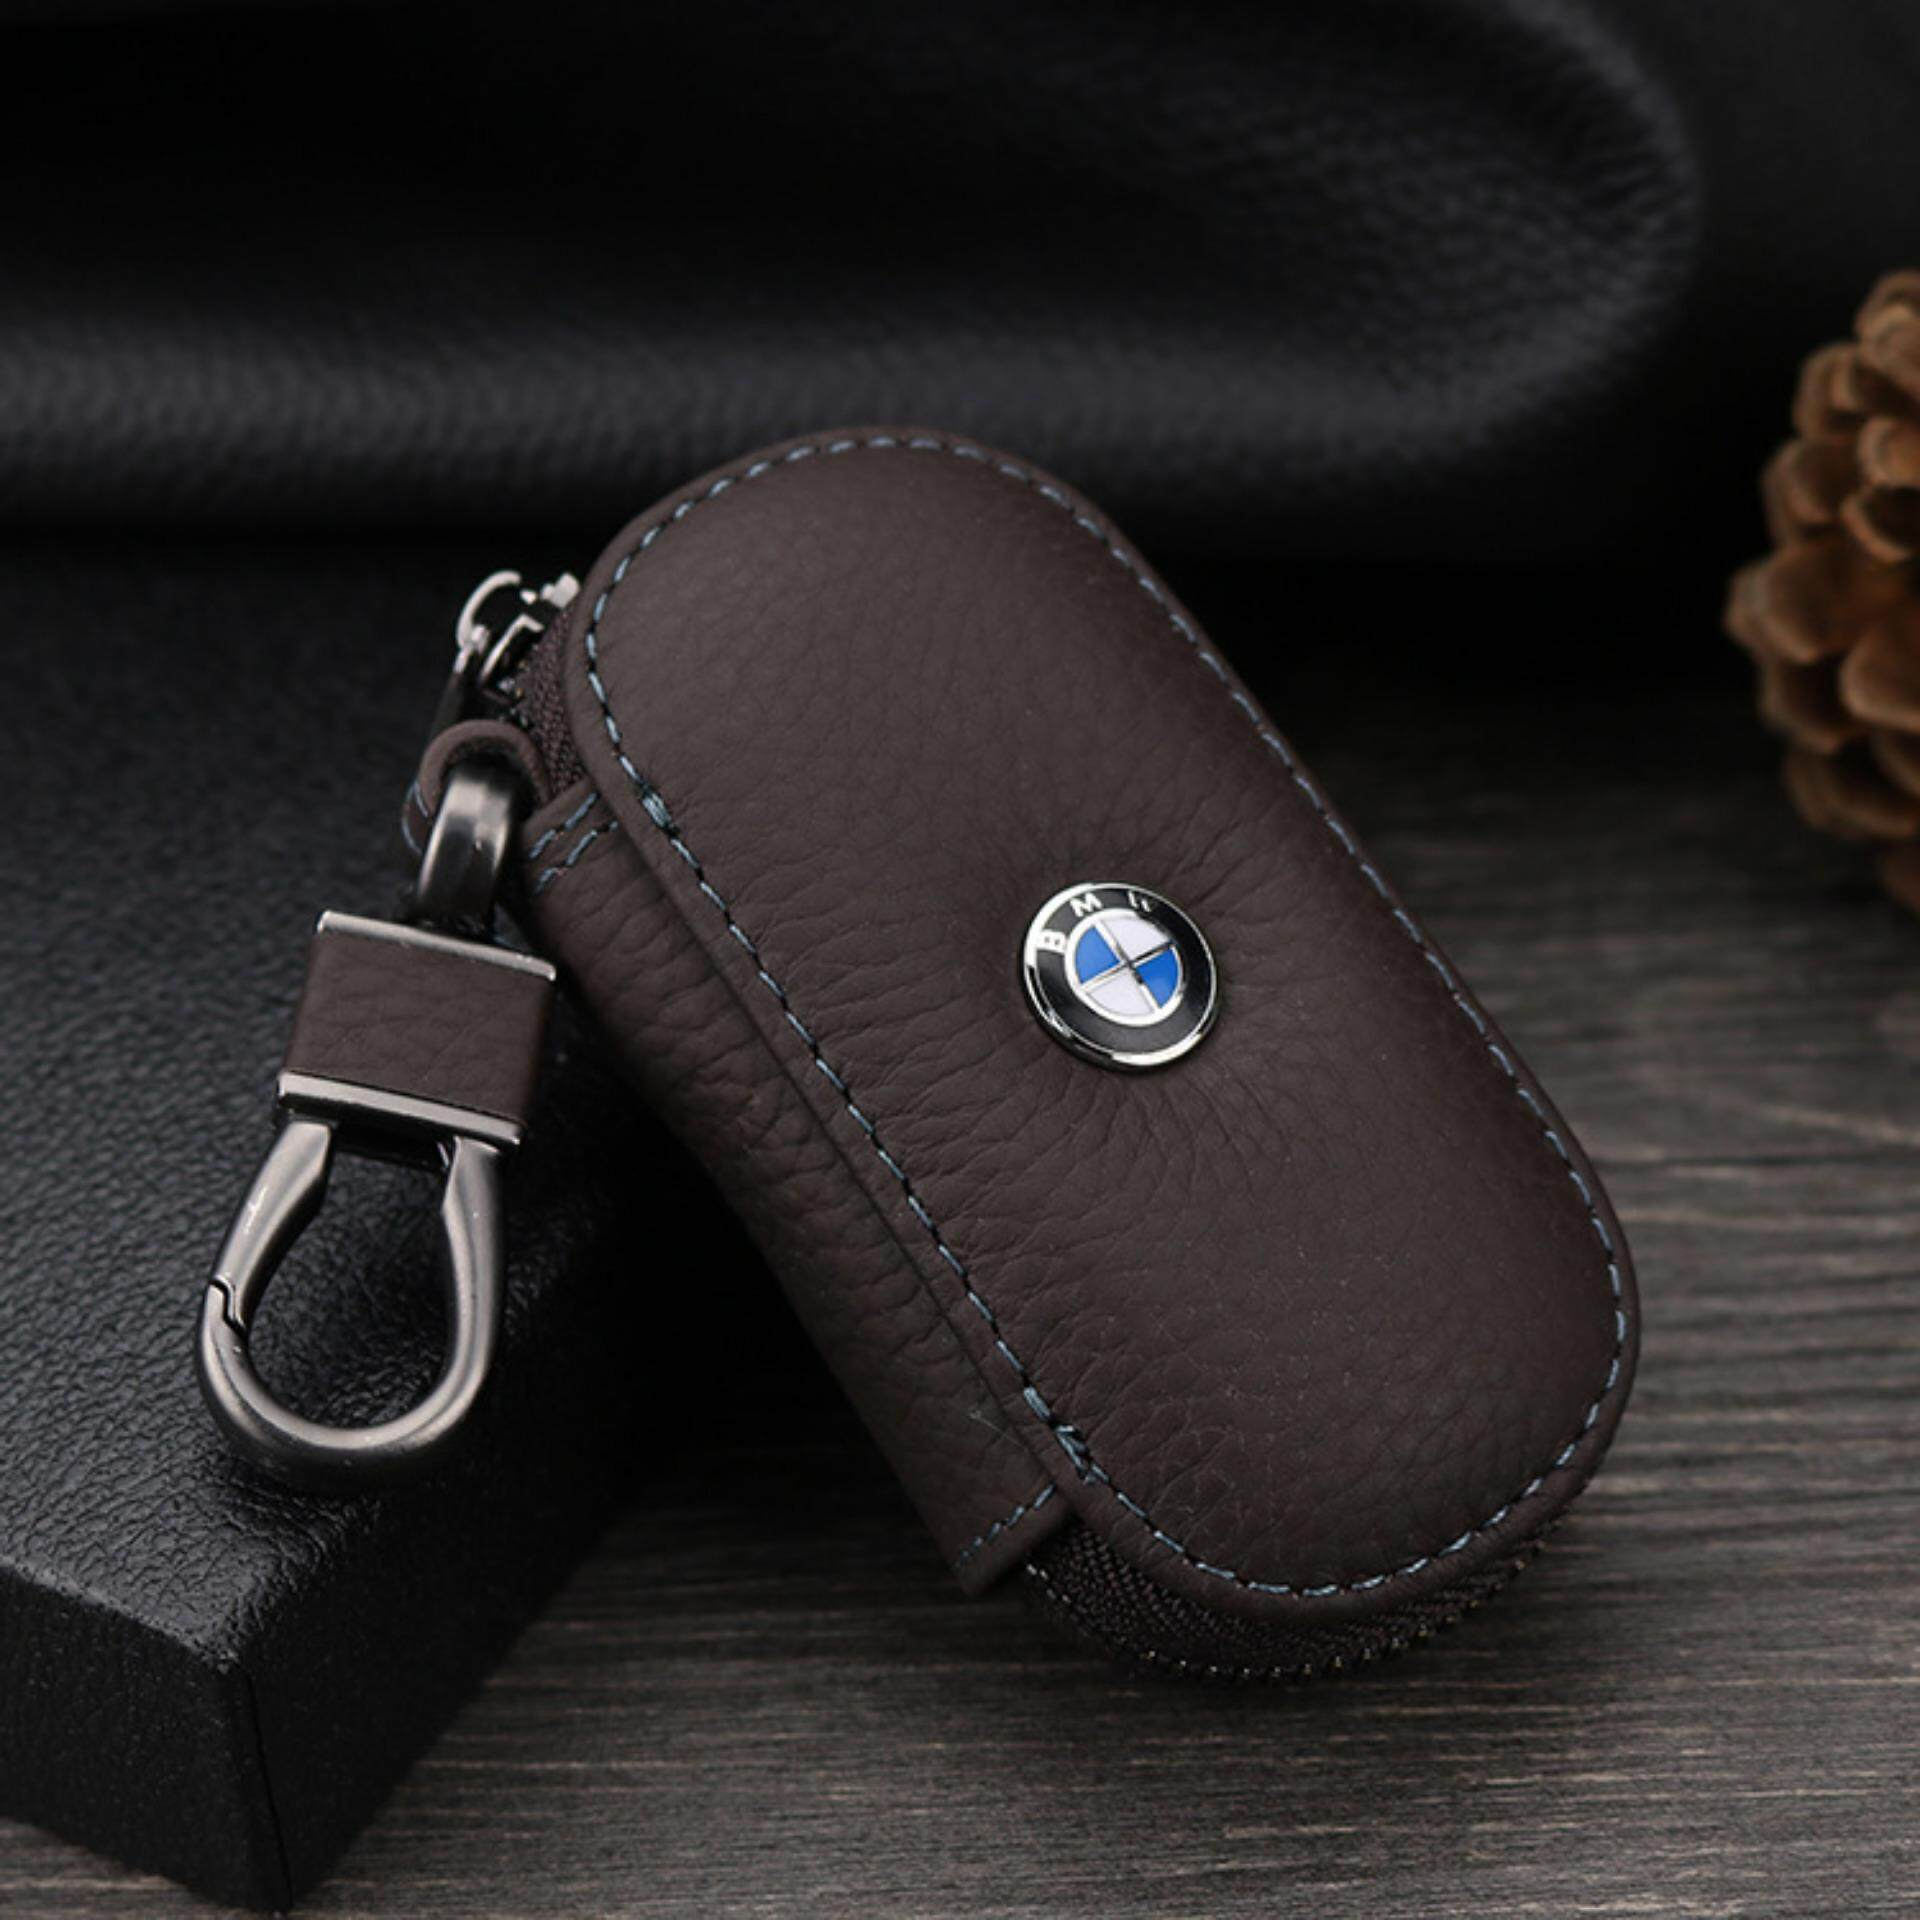 Beli 1Pc Leather Key Wallet Car Key Case For For Bmw E90 F10 F30 E34 F20 X5 E53 E30 X6 X1 X3 E46 E39 Coffee Intl